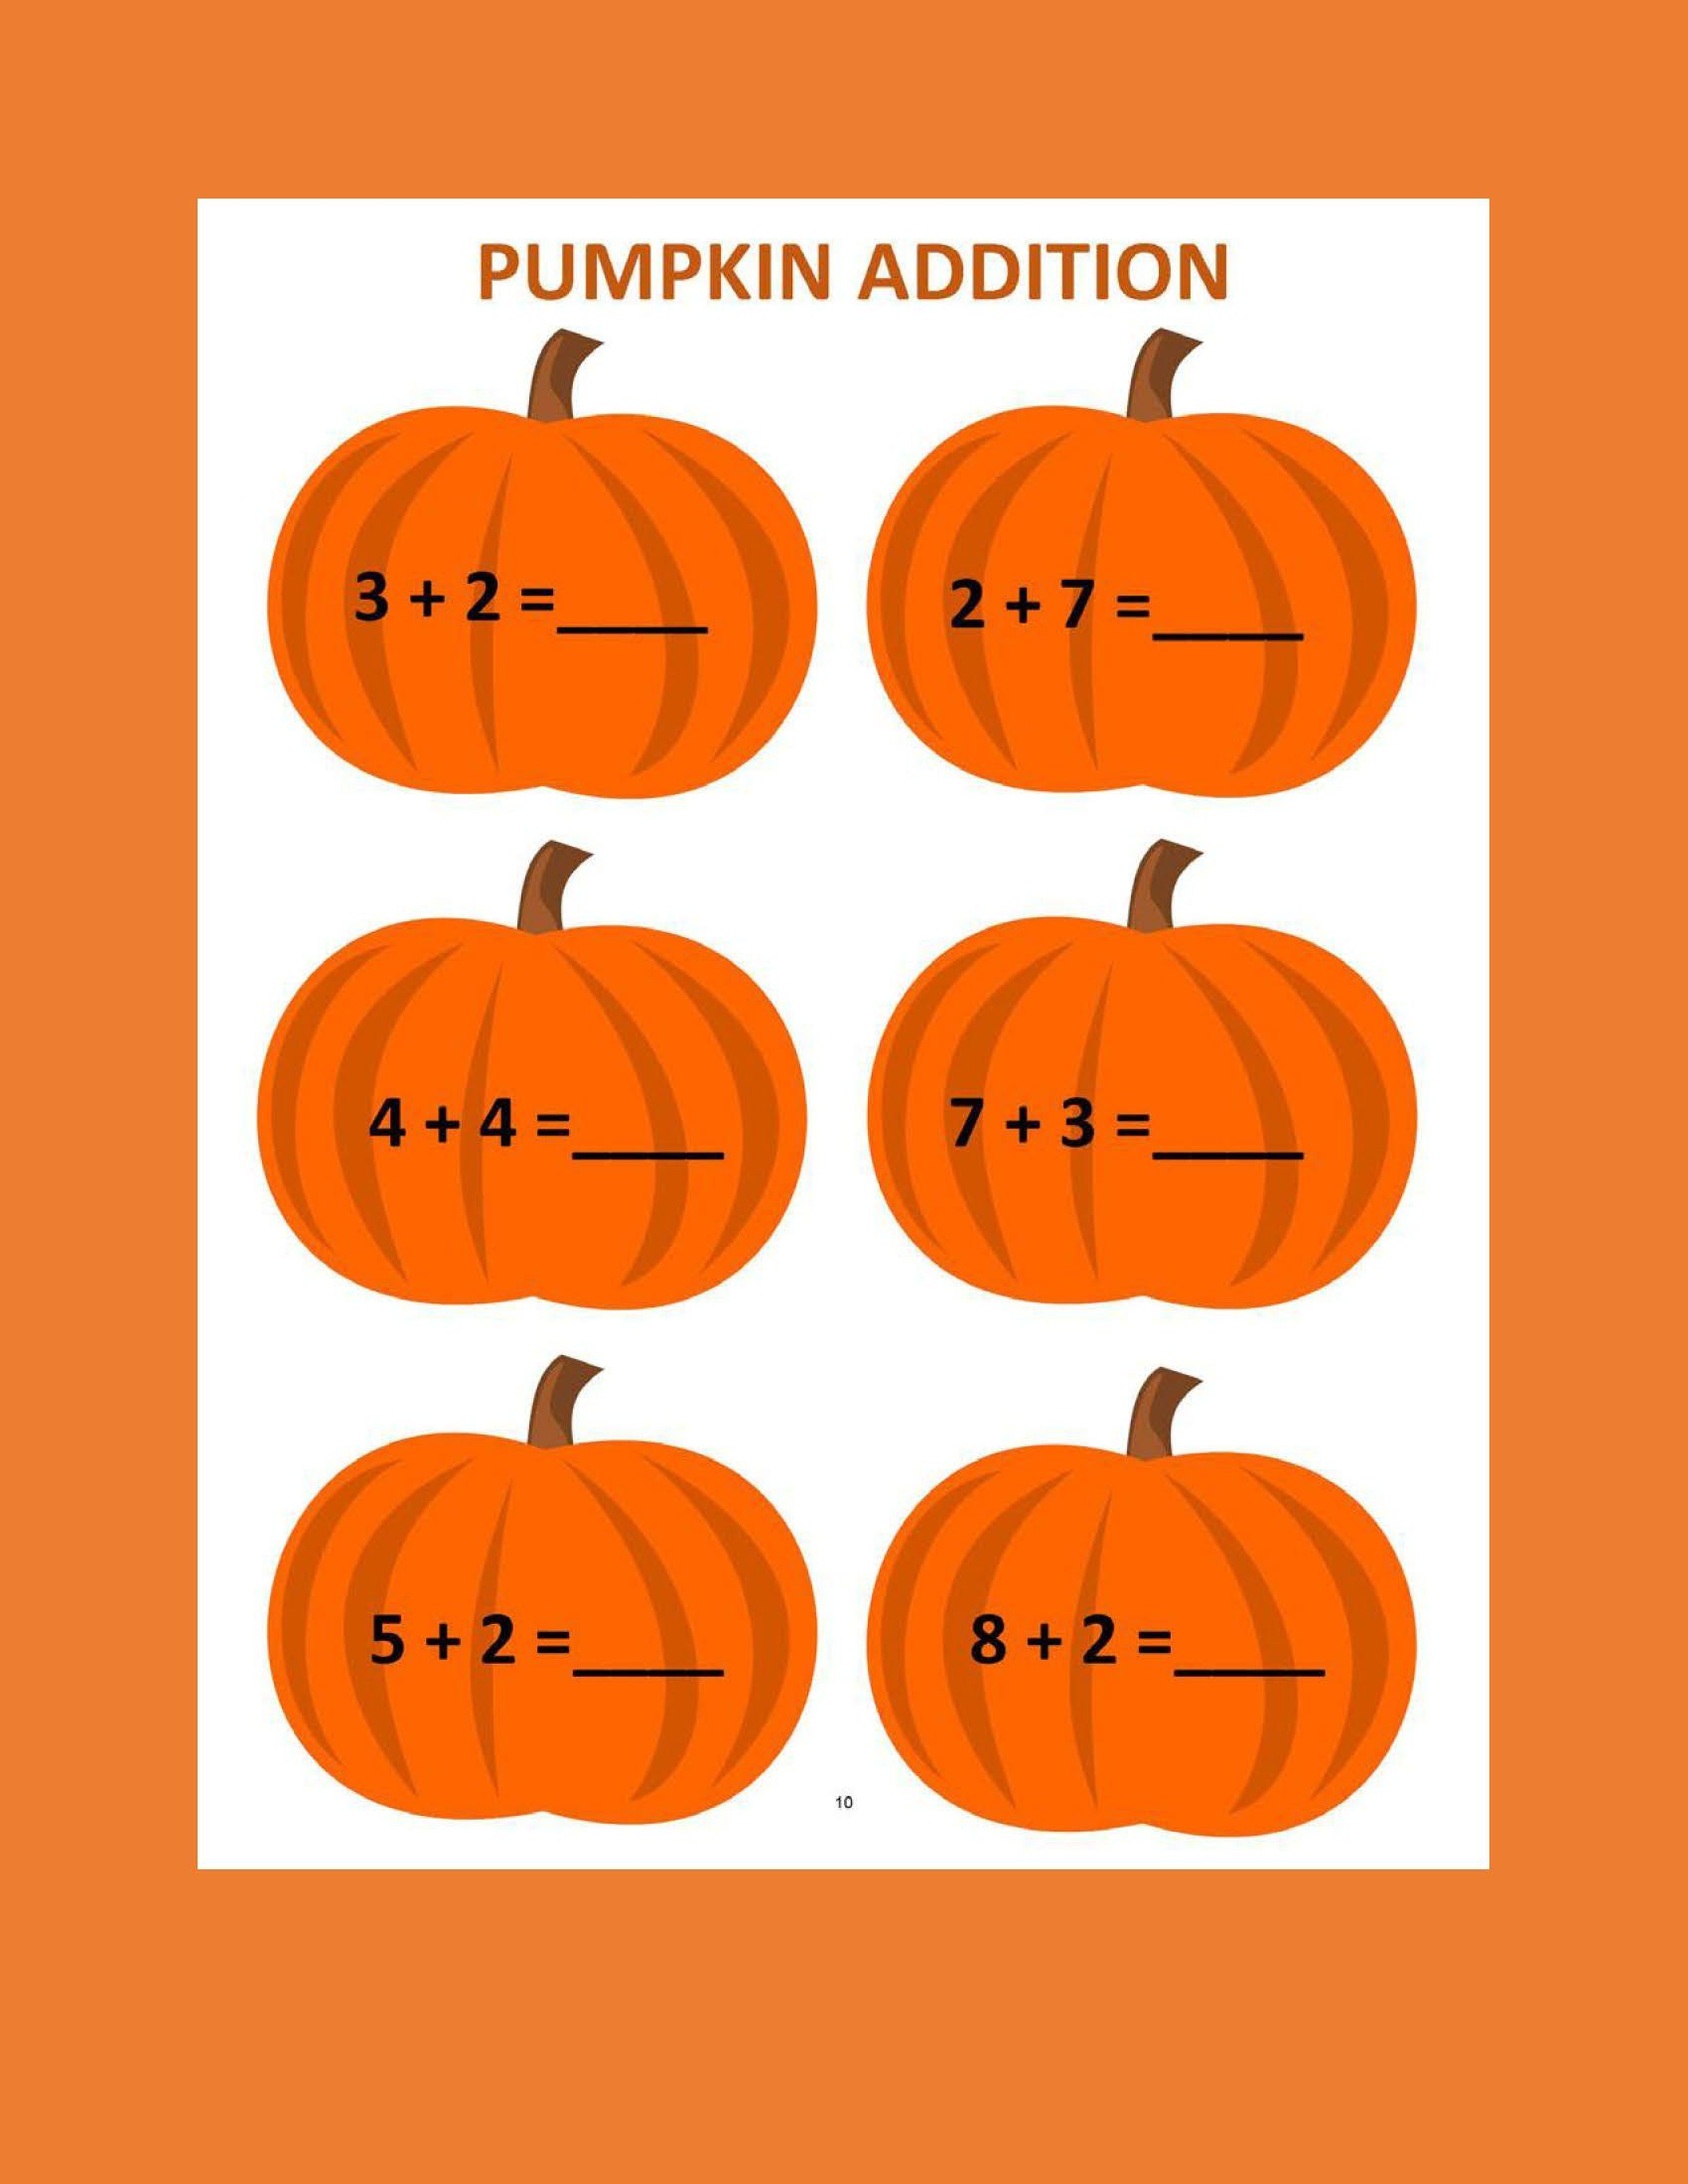 Pumpkin Addition 12 Worksheets Preschool